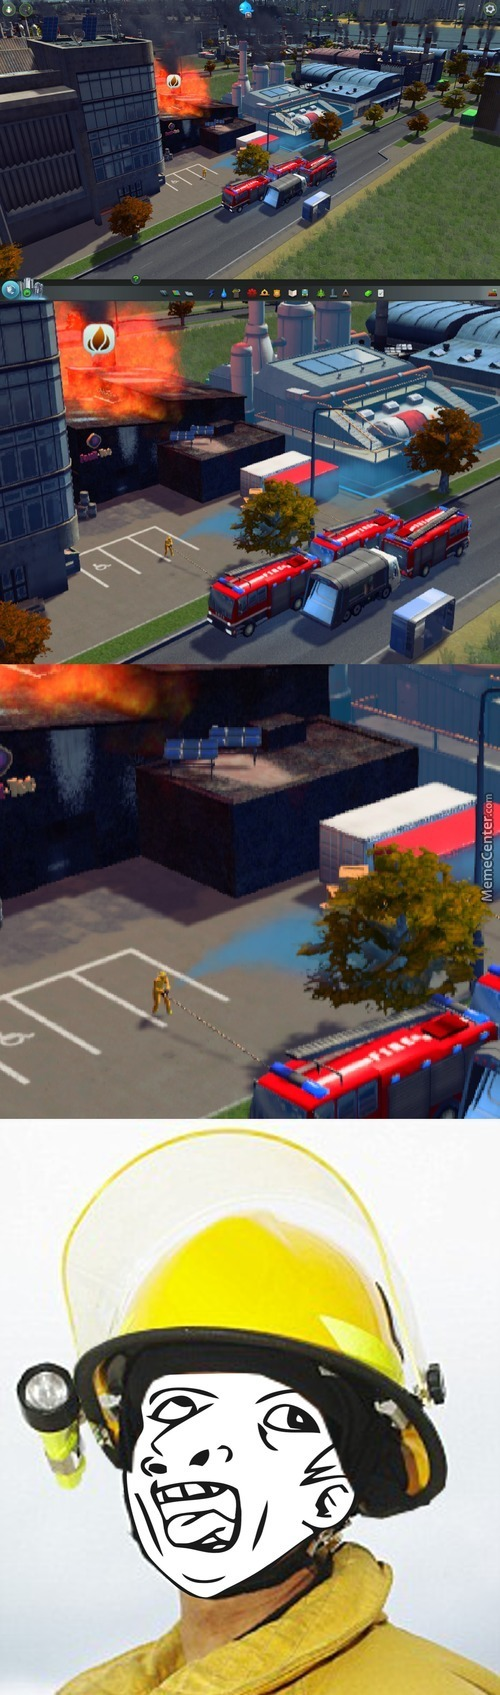 Video Game Logic - Genius Firefighter